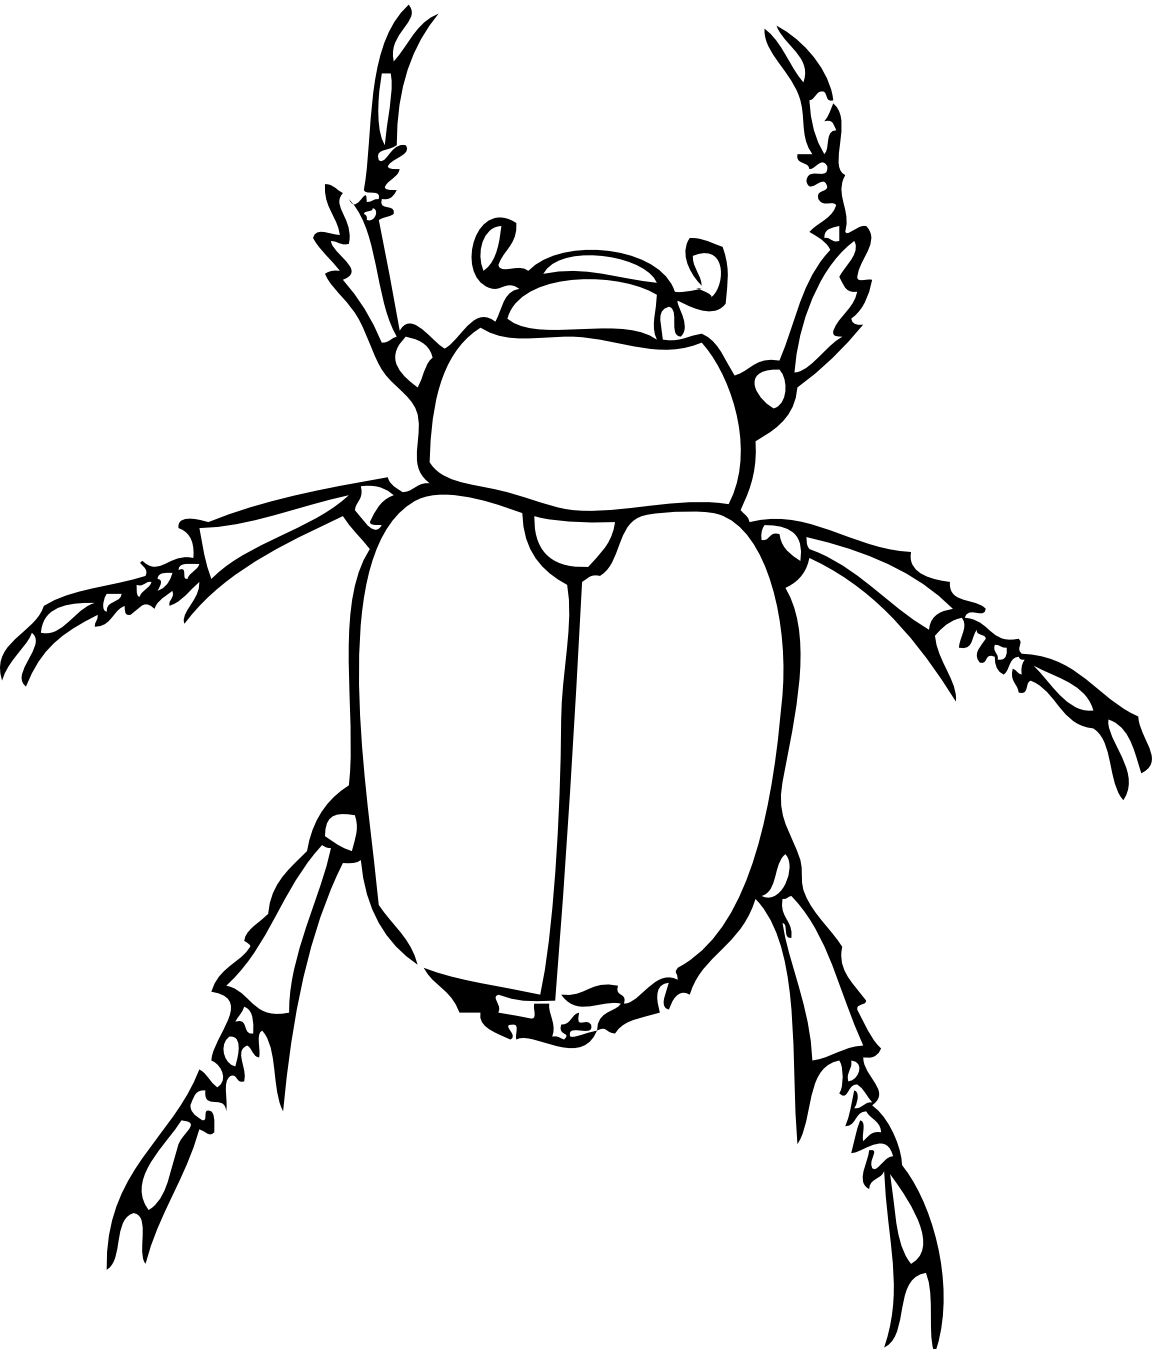 drawing bugs flea